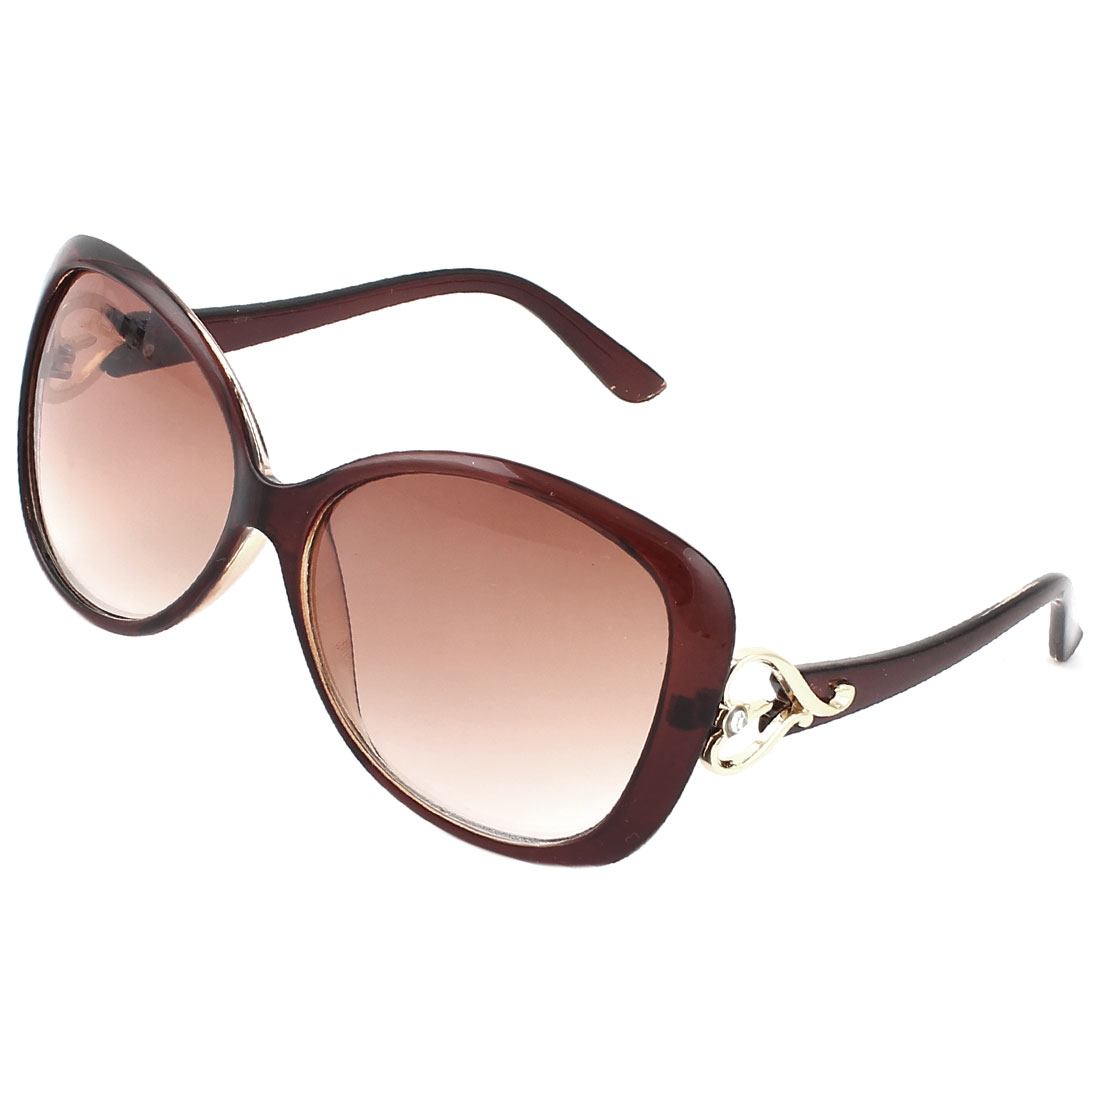 Woman Brown Plastic Arms Full Frame Heart Accent Sunglasses Eyewear